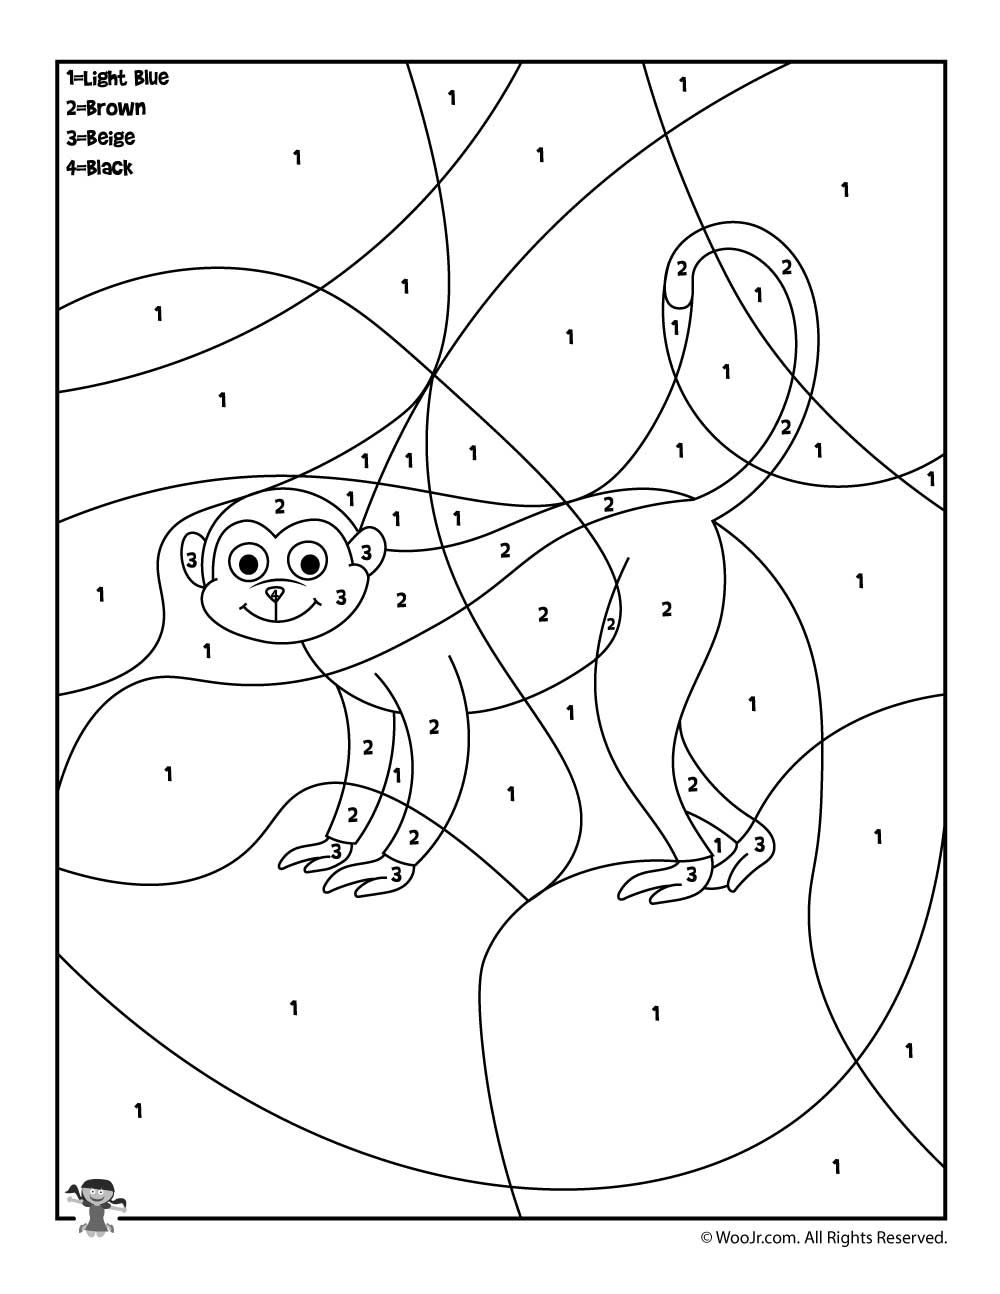 Preschool Color By Number Animal Coloring Pages Woo Jr Kids Activities Animal Coloring Pages Coloring Pages Coloring Pages For Kids